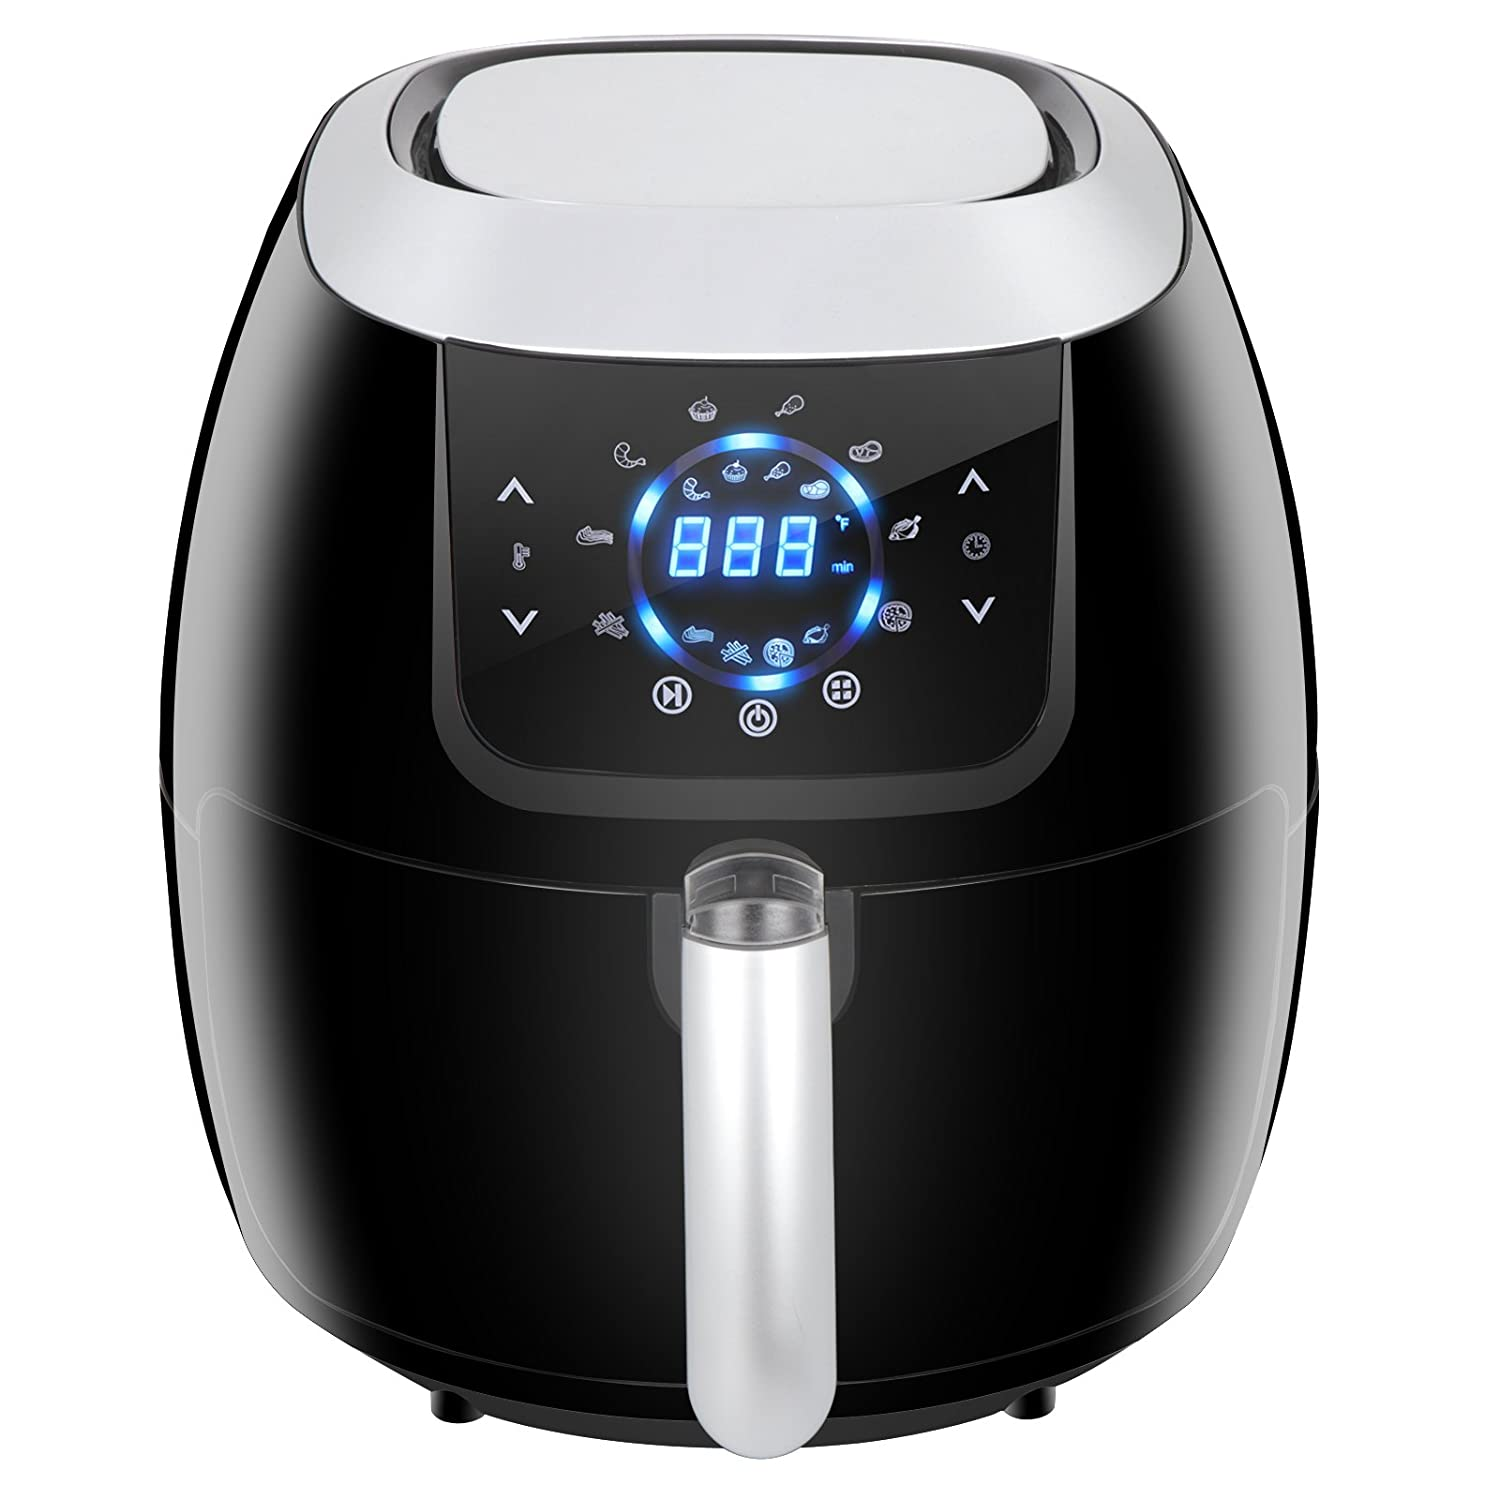 SUPER DEAL XXL Air Fryer Family Size 5.8 Qt. 8-in-1 Touch Screen with Customized Function, Pause Set and Recipe Books